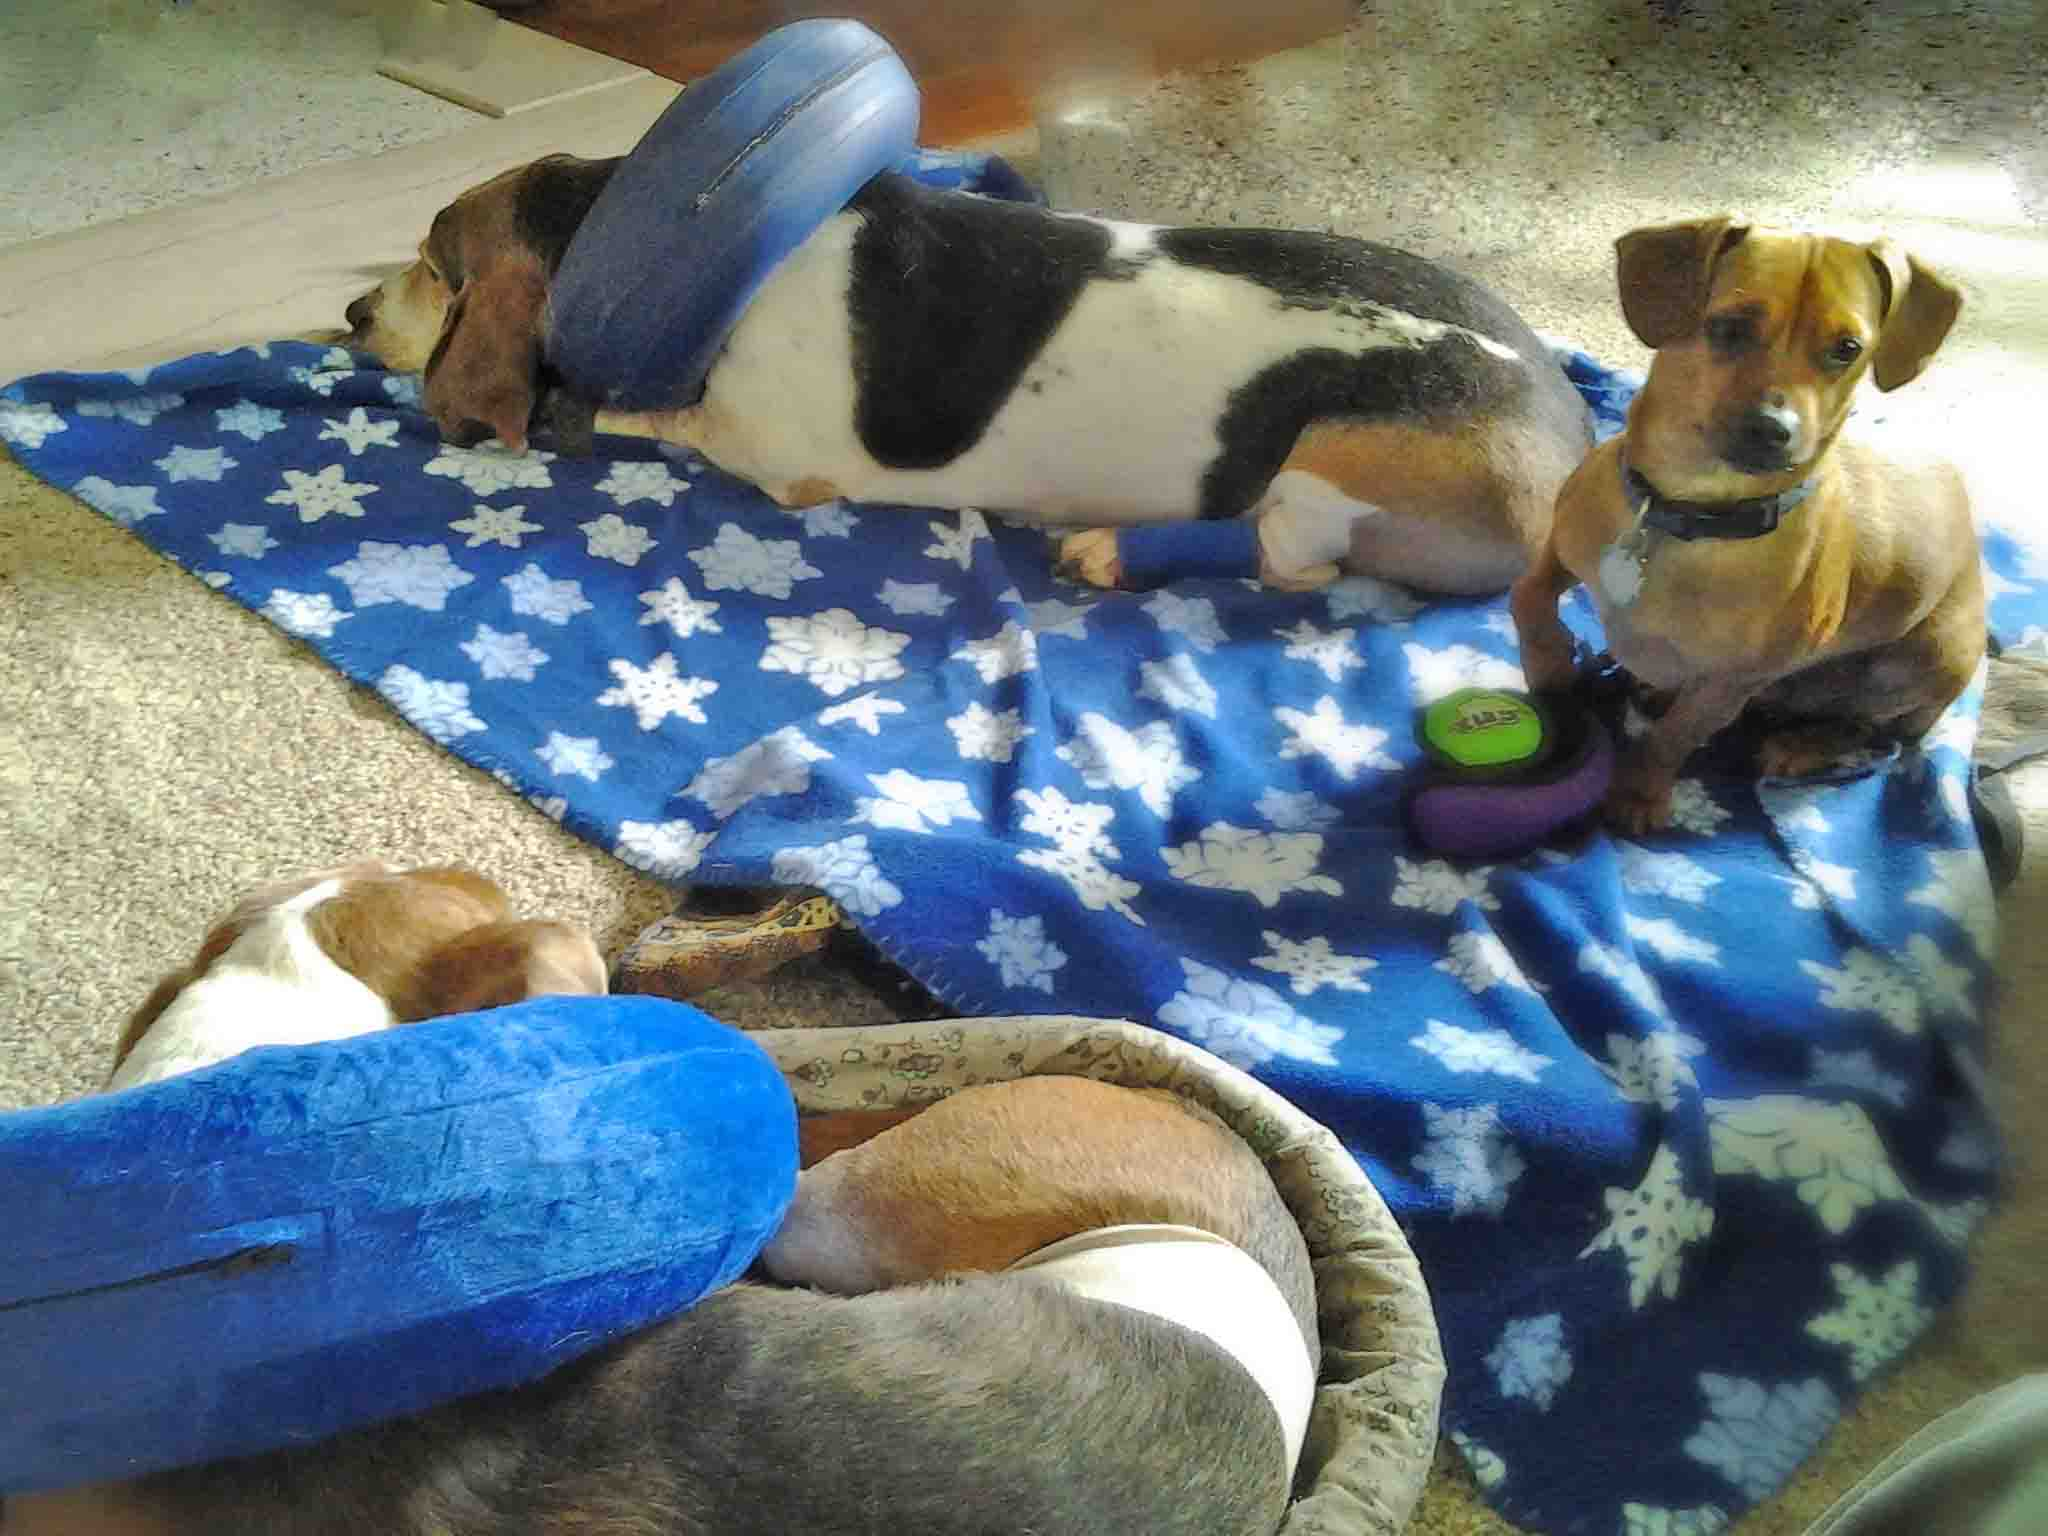 Twin bassets Elvis n Dude with double donuts. The new cone, with less shame. But it only works when you don't have a head injury. Doodle here is working on his therapy dog skills a few years ago. Photo: (c) Barb Ayers, DogDiary.org